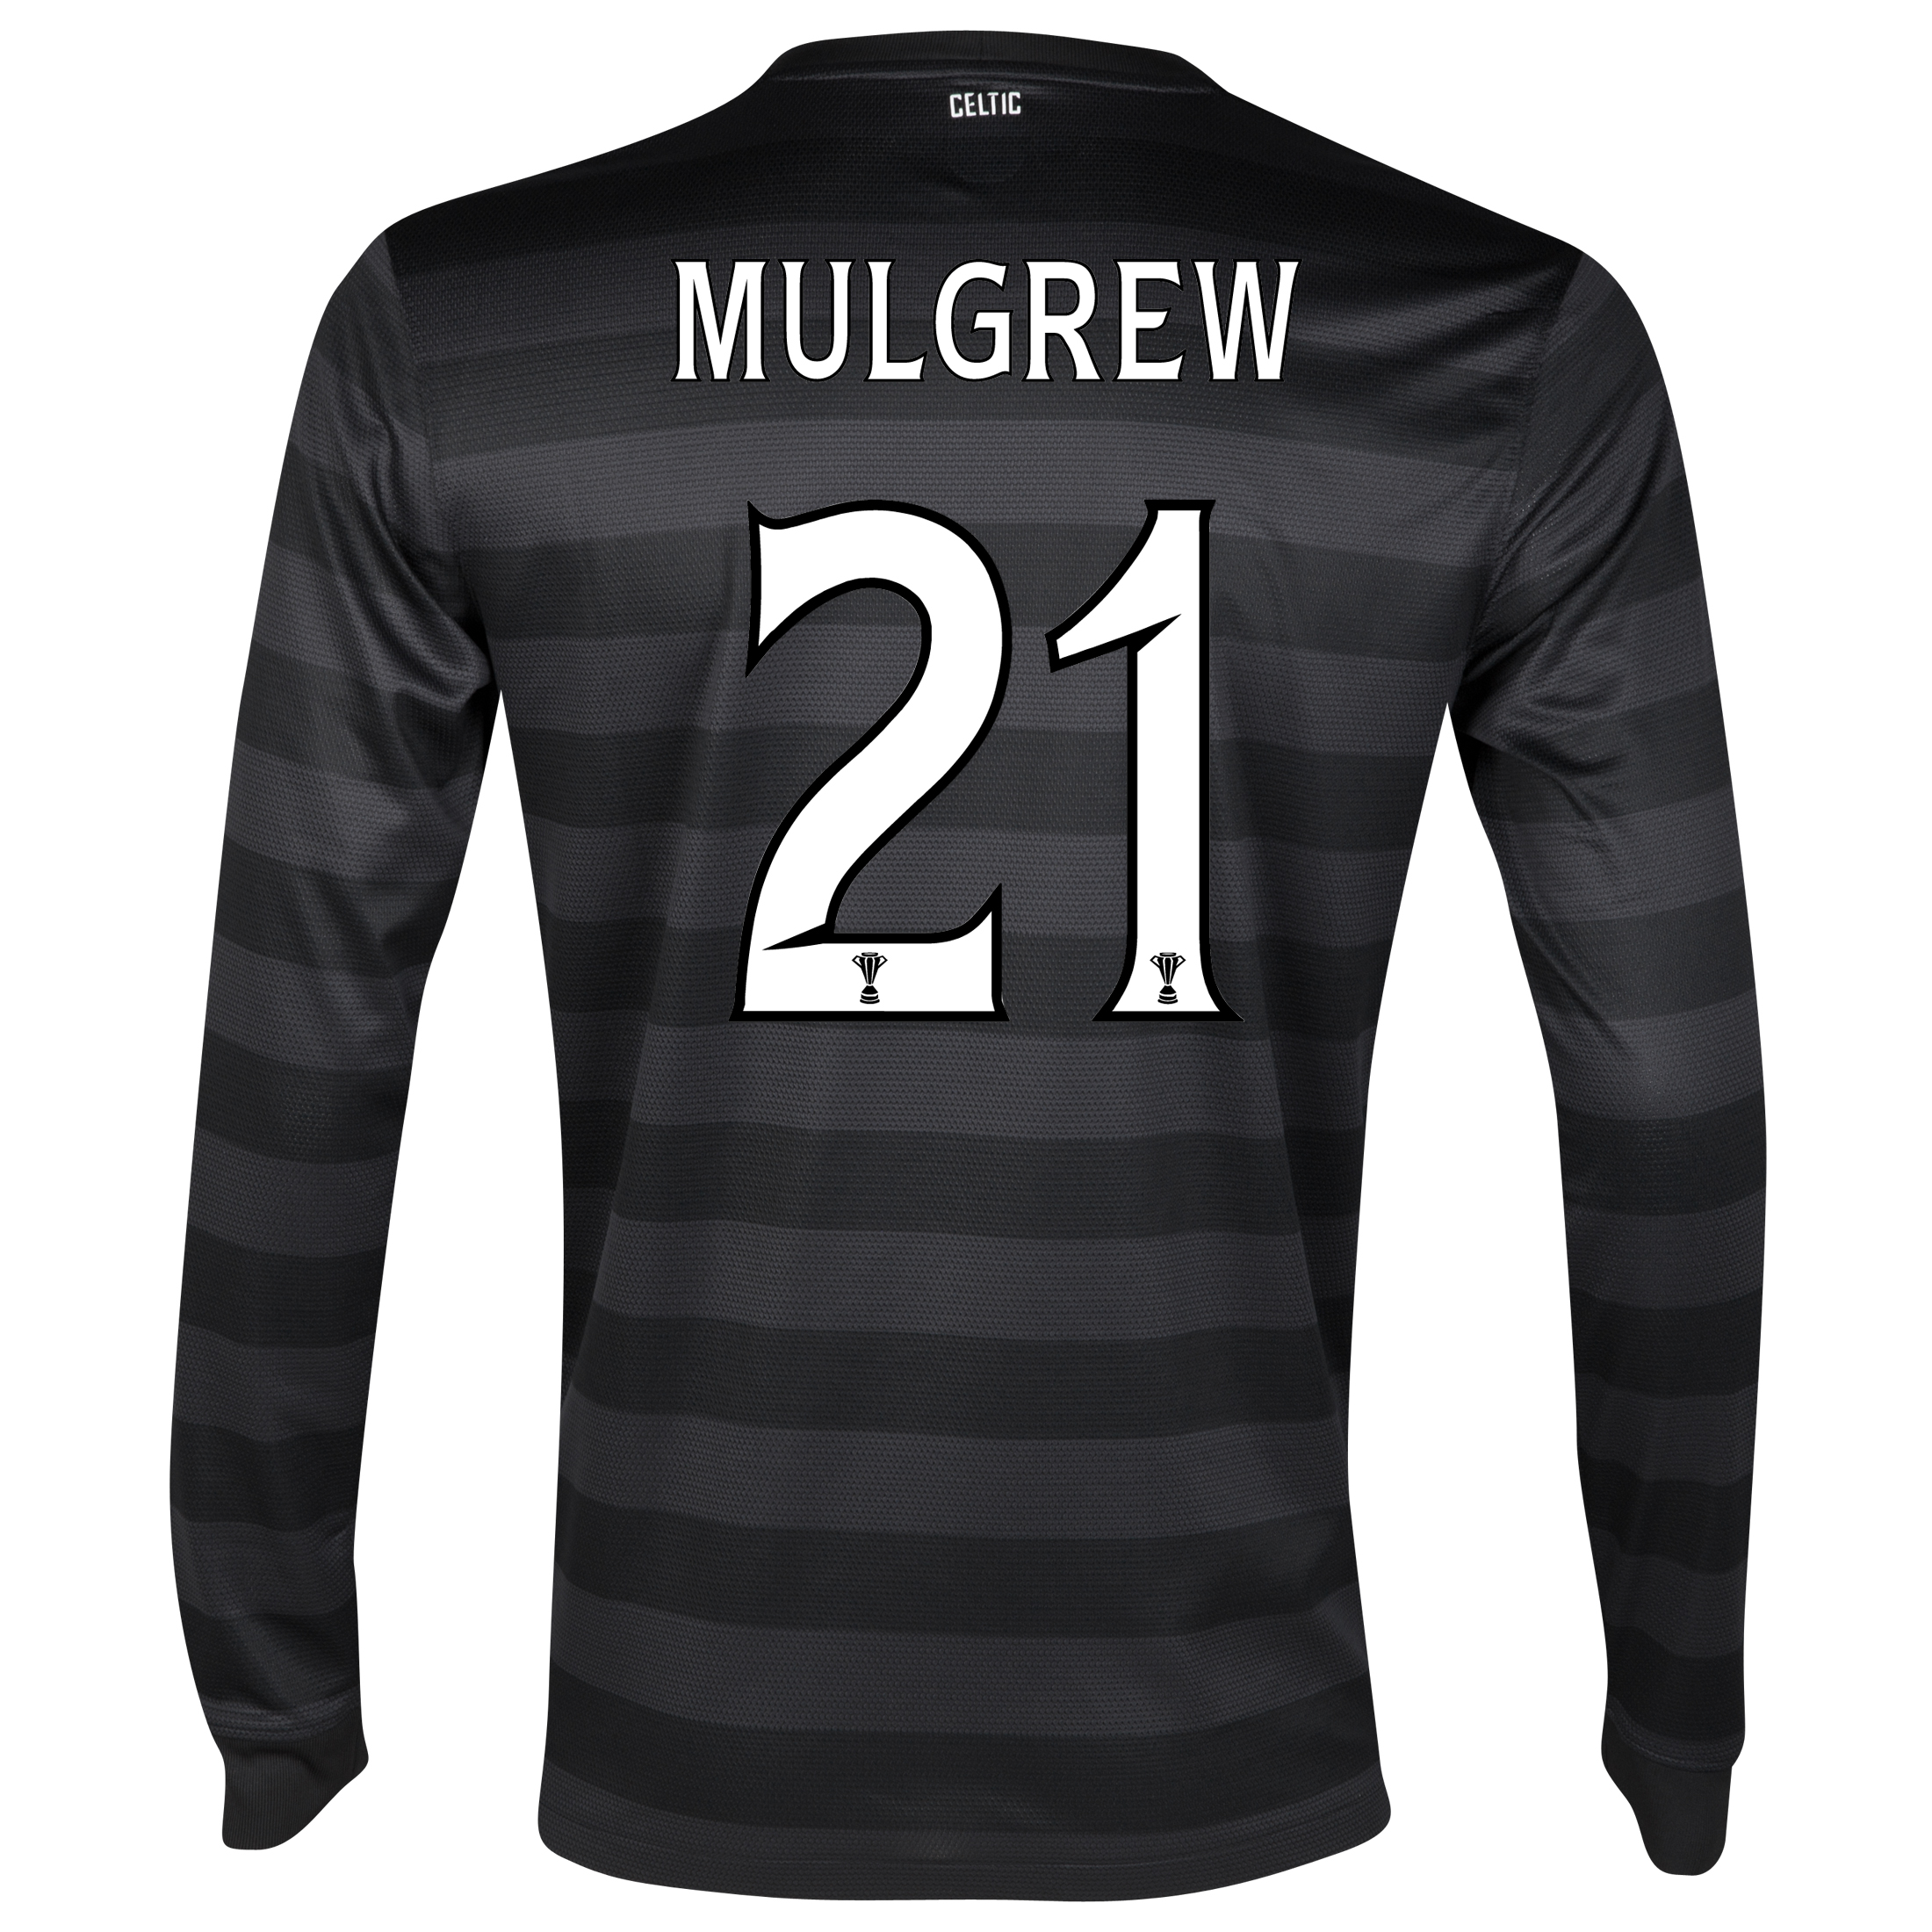 Celtic Away Shirt 2012/13 - Long Sleeved no sponsor with Mulgrew 21 printing